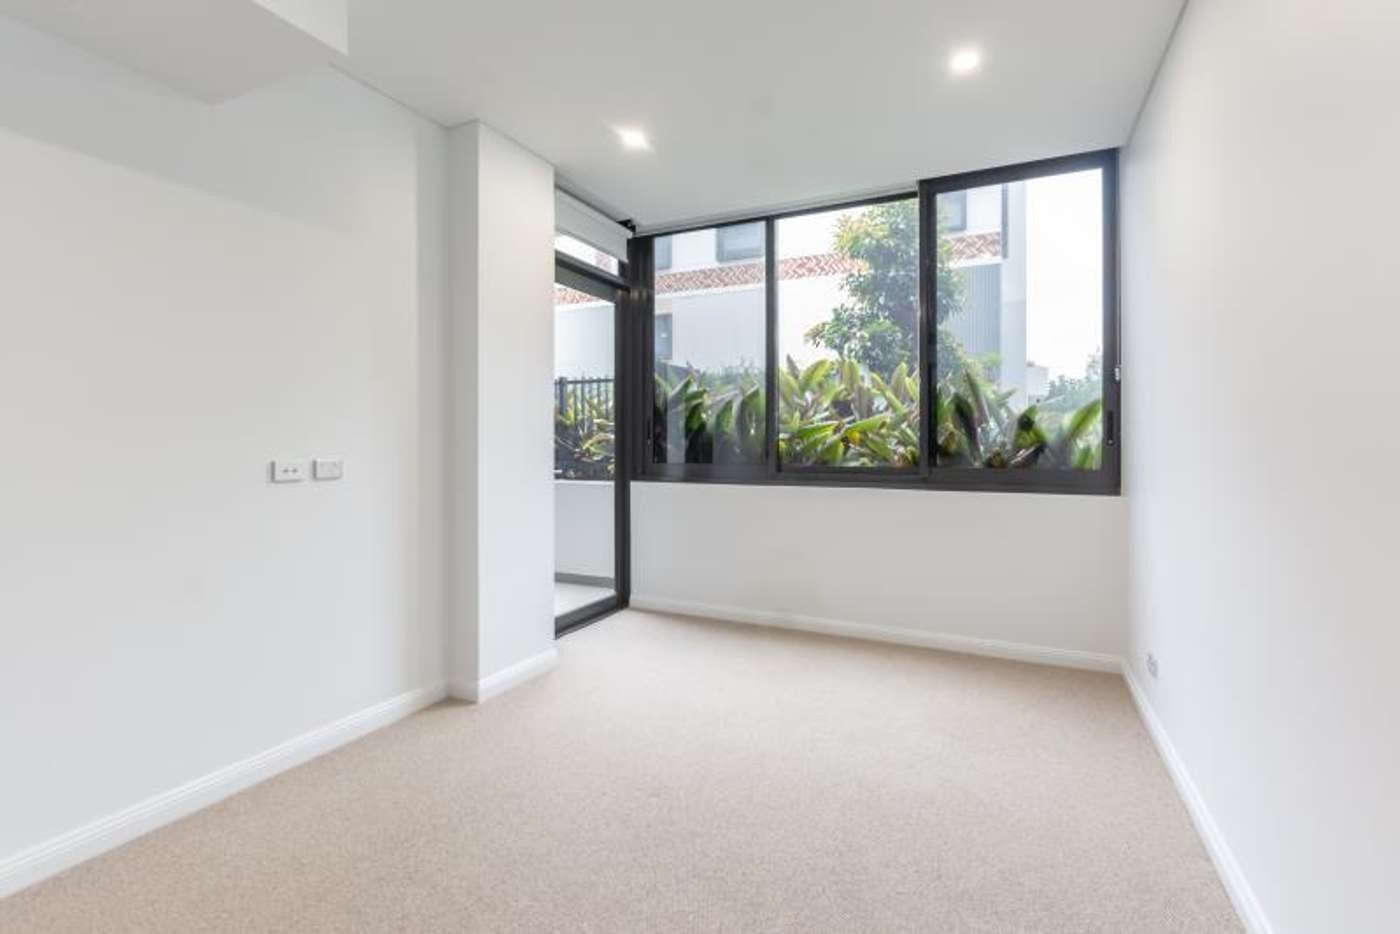 Seventh view of Homely apartment listing, Level G/G26/3 Stedman Street, Rosebery NSW 2018